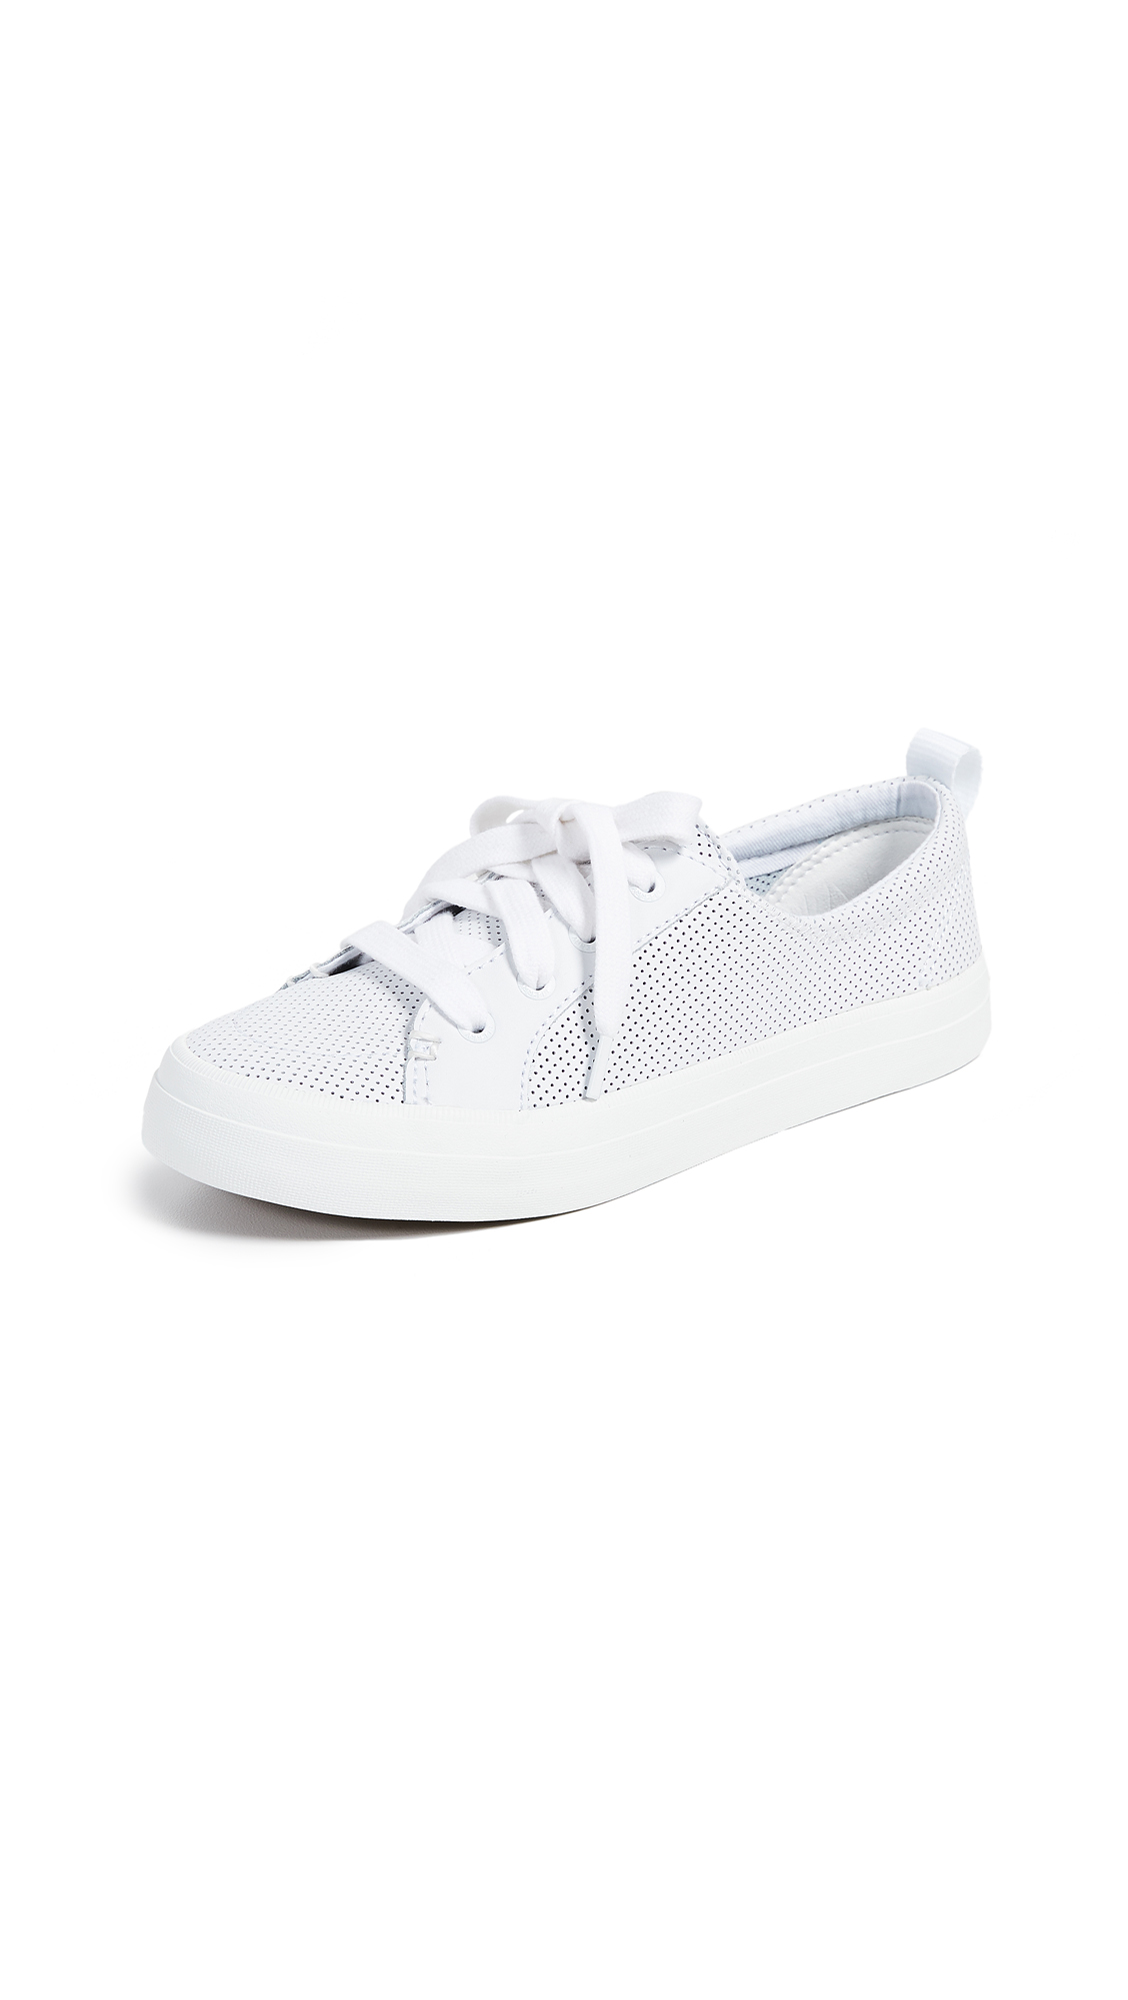 Sperry Crest Vibe Perforated Sneakers - White